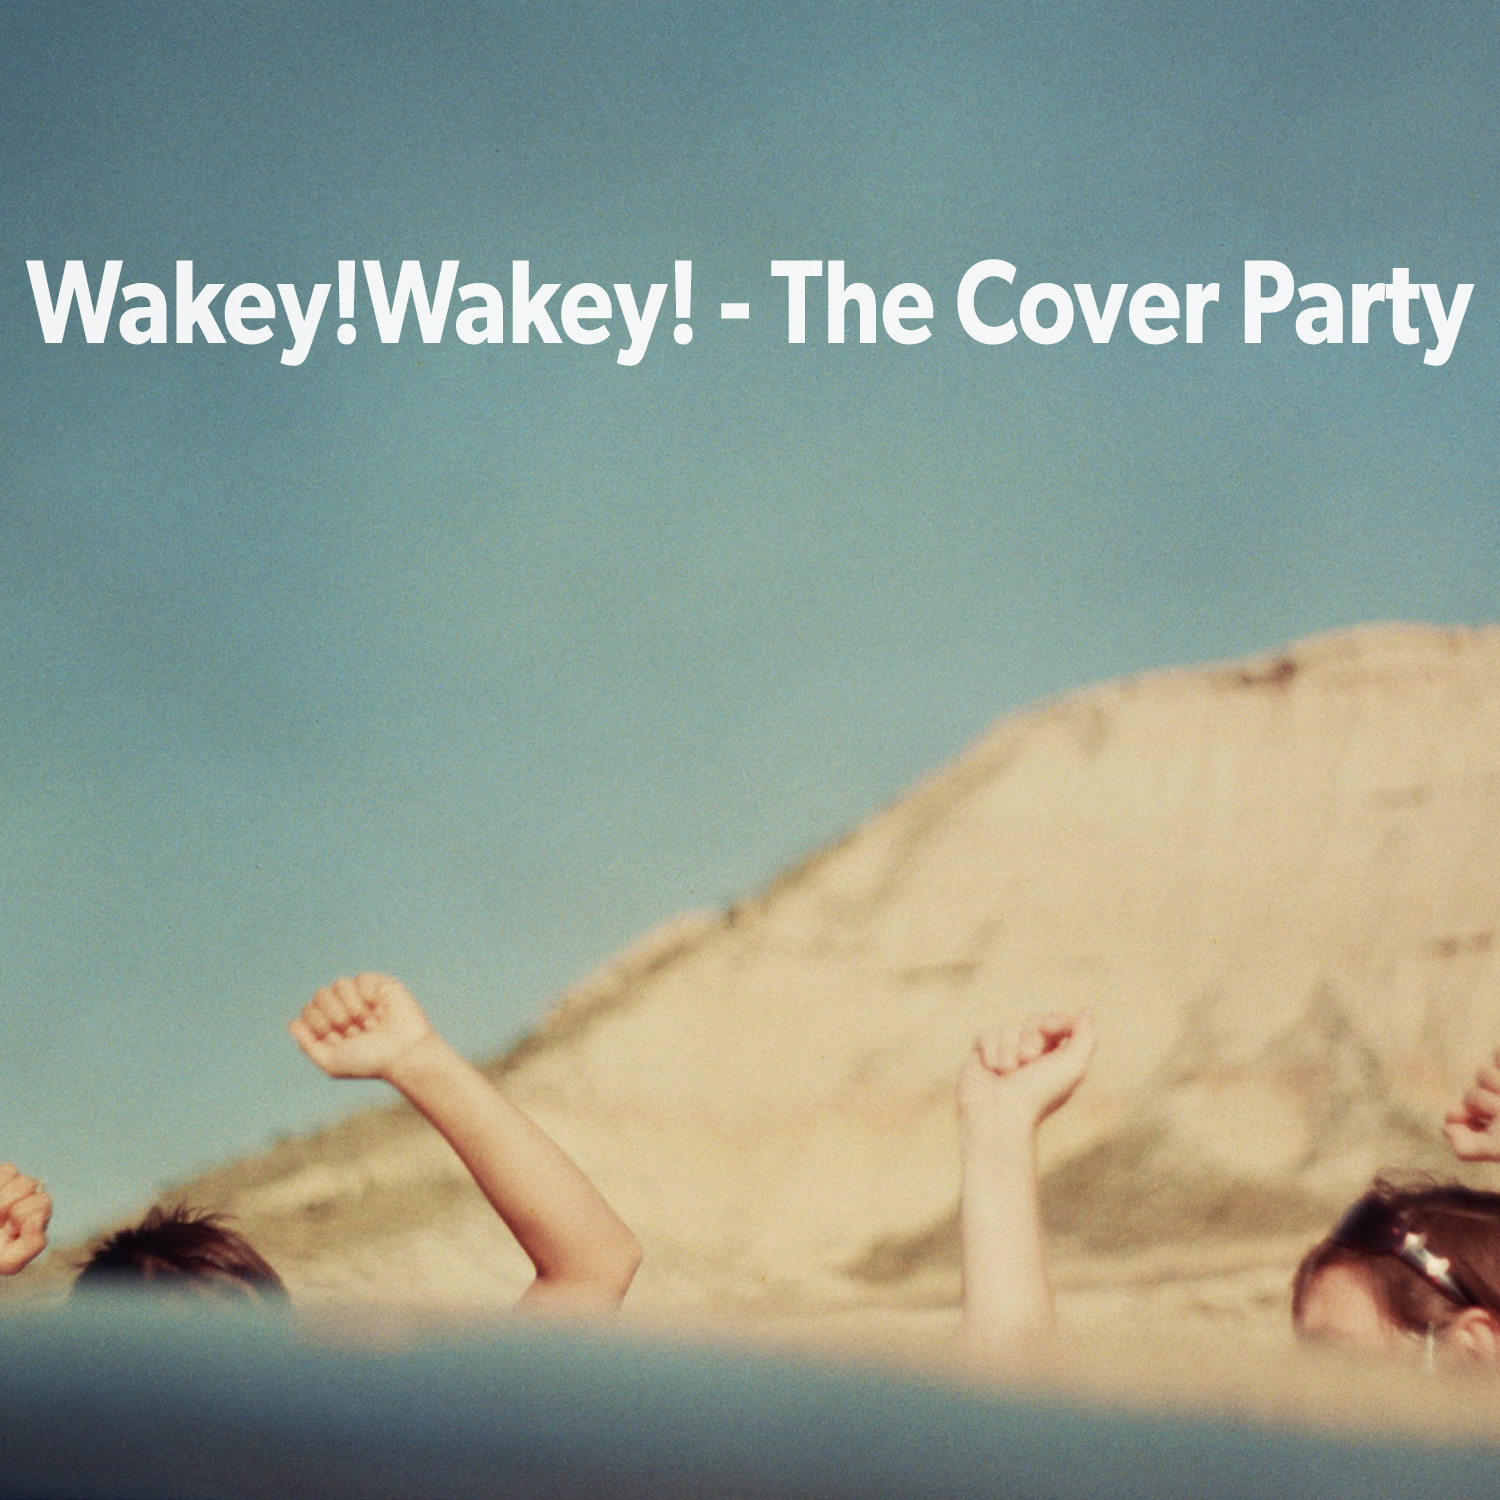 Wakey!Wakey! joins the Cover Party for Record Store Day